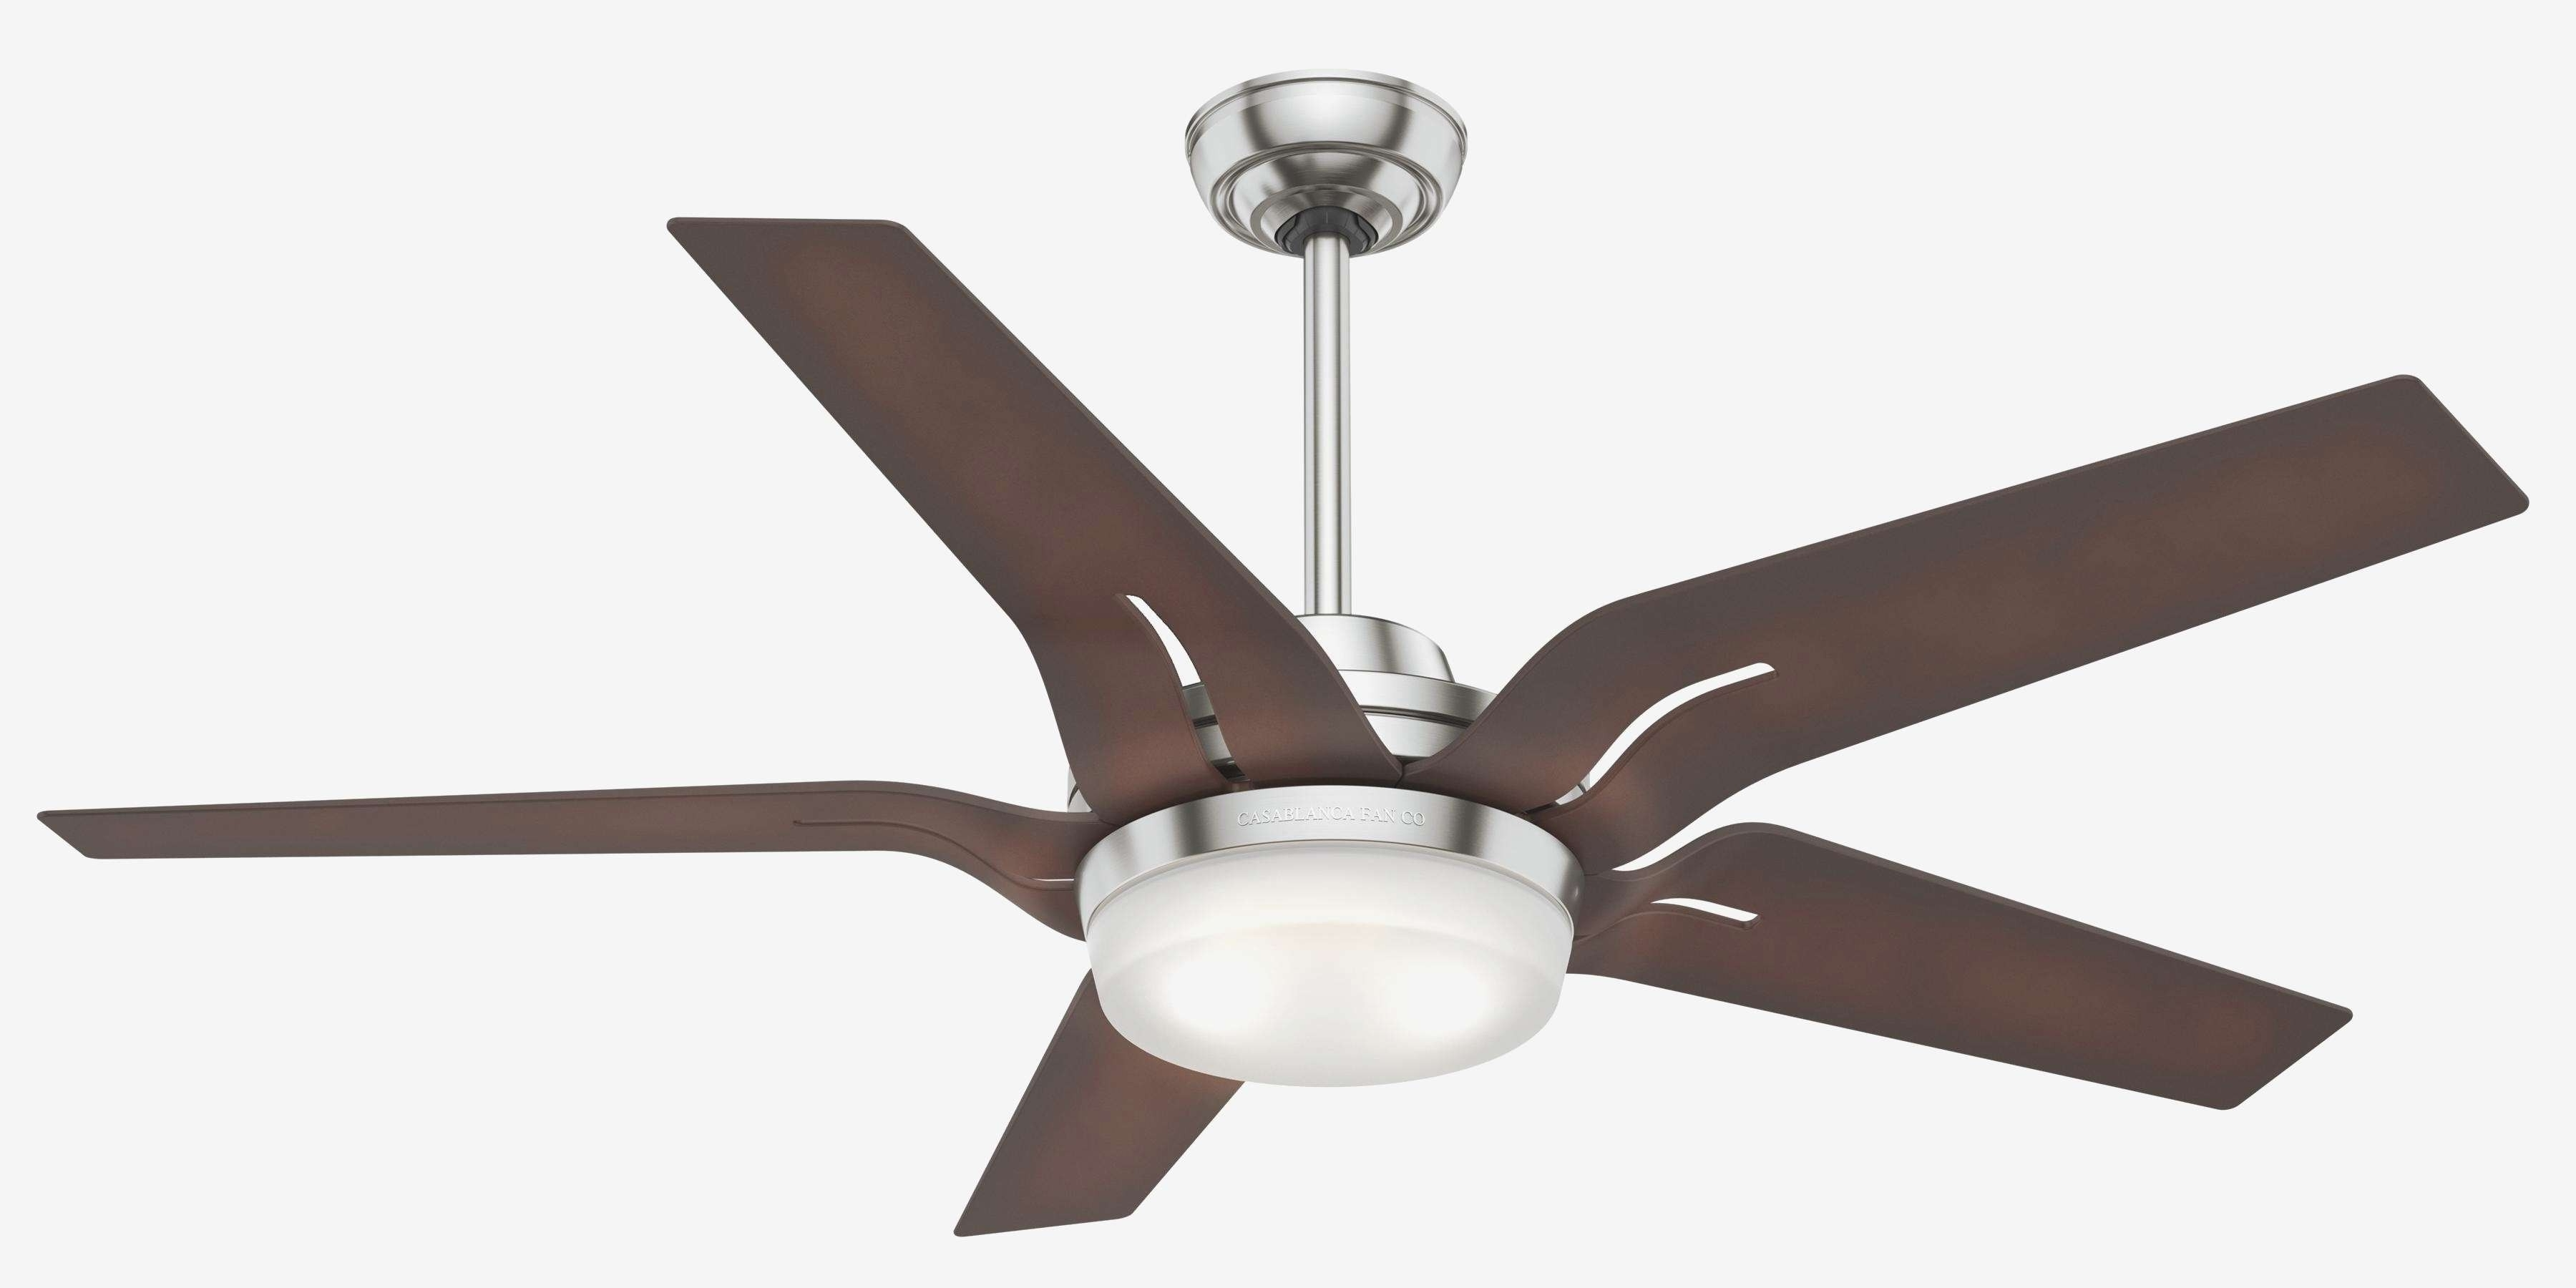 Trendy Calmly Outdoor Ceiling Fan No Light Lighting Design Ideas Ceiling For Outdoor Ceiling Fans For Windy Areas (View 13 of 20)